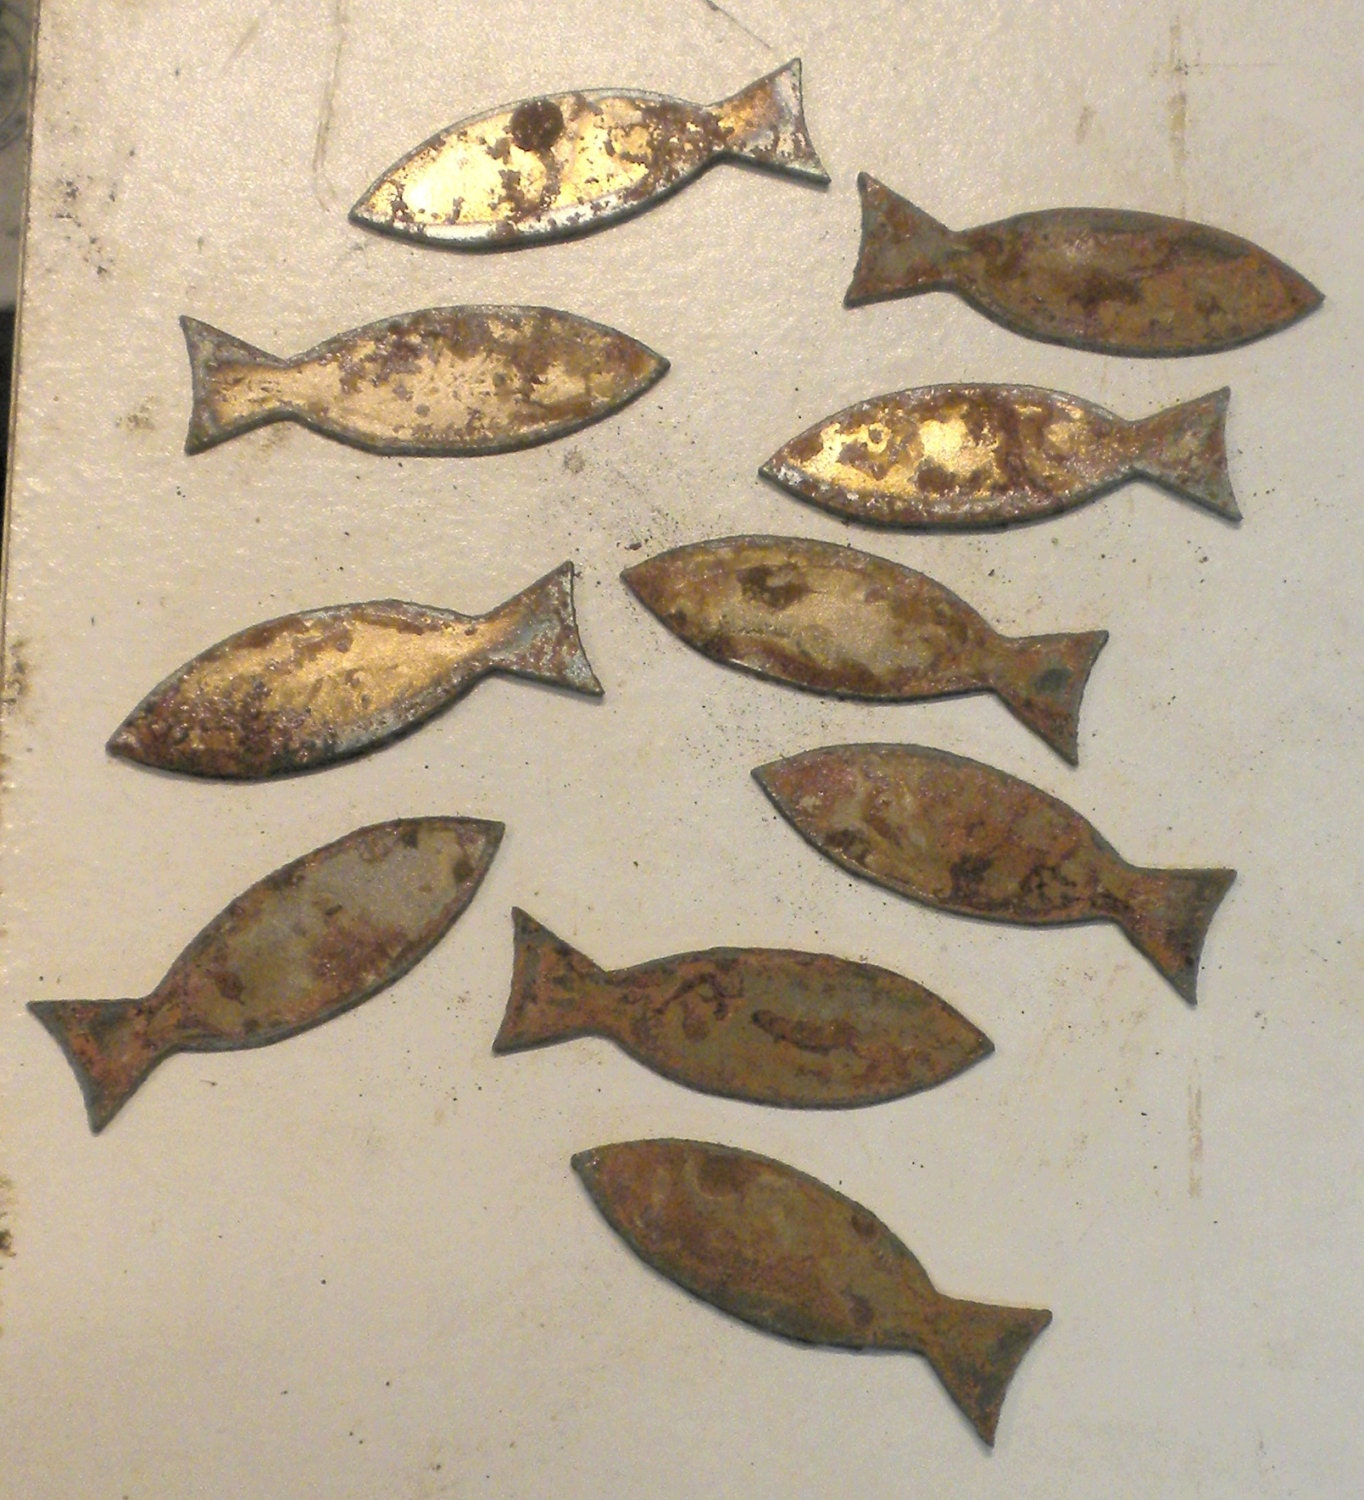 Metal garden wall art trellis black 163 29 99 this wall art is the - Lot Set Of 10 Fish Shapes Ichthus 2 Inch Rusty Vintage Antique Y Metal Steel Wall Art Ornament Craft Stencil